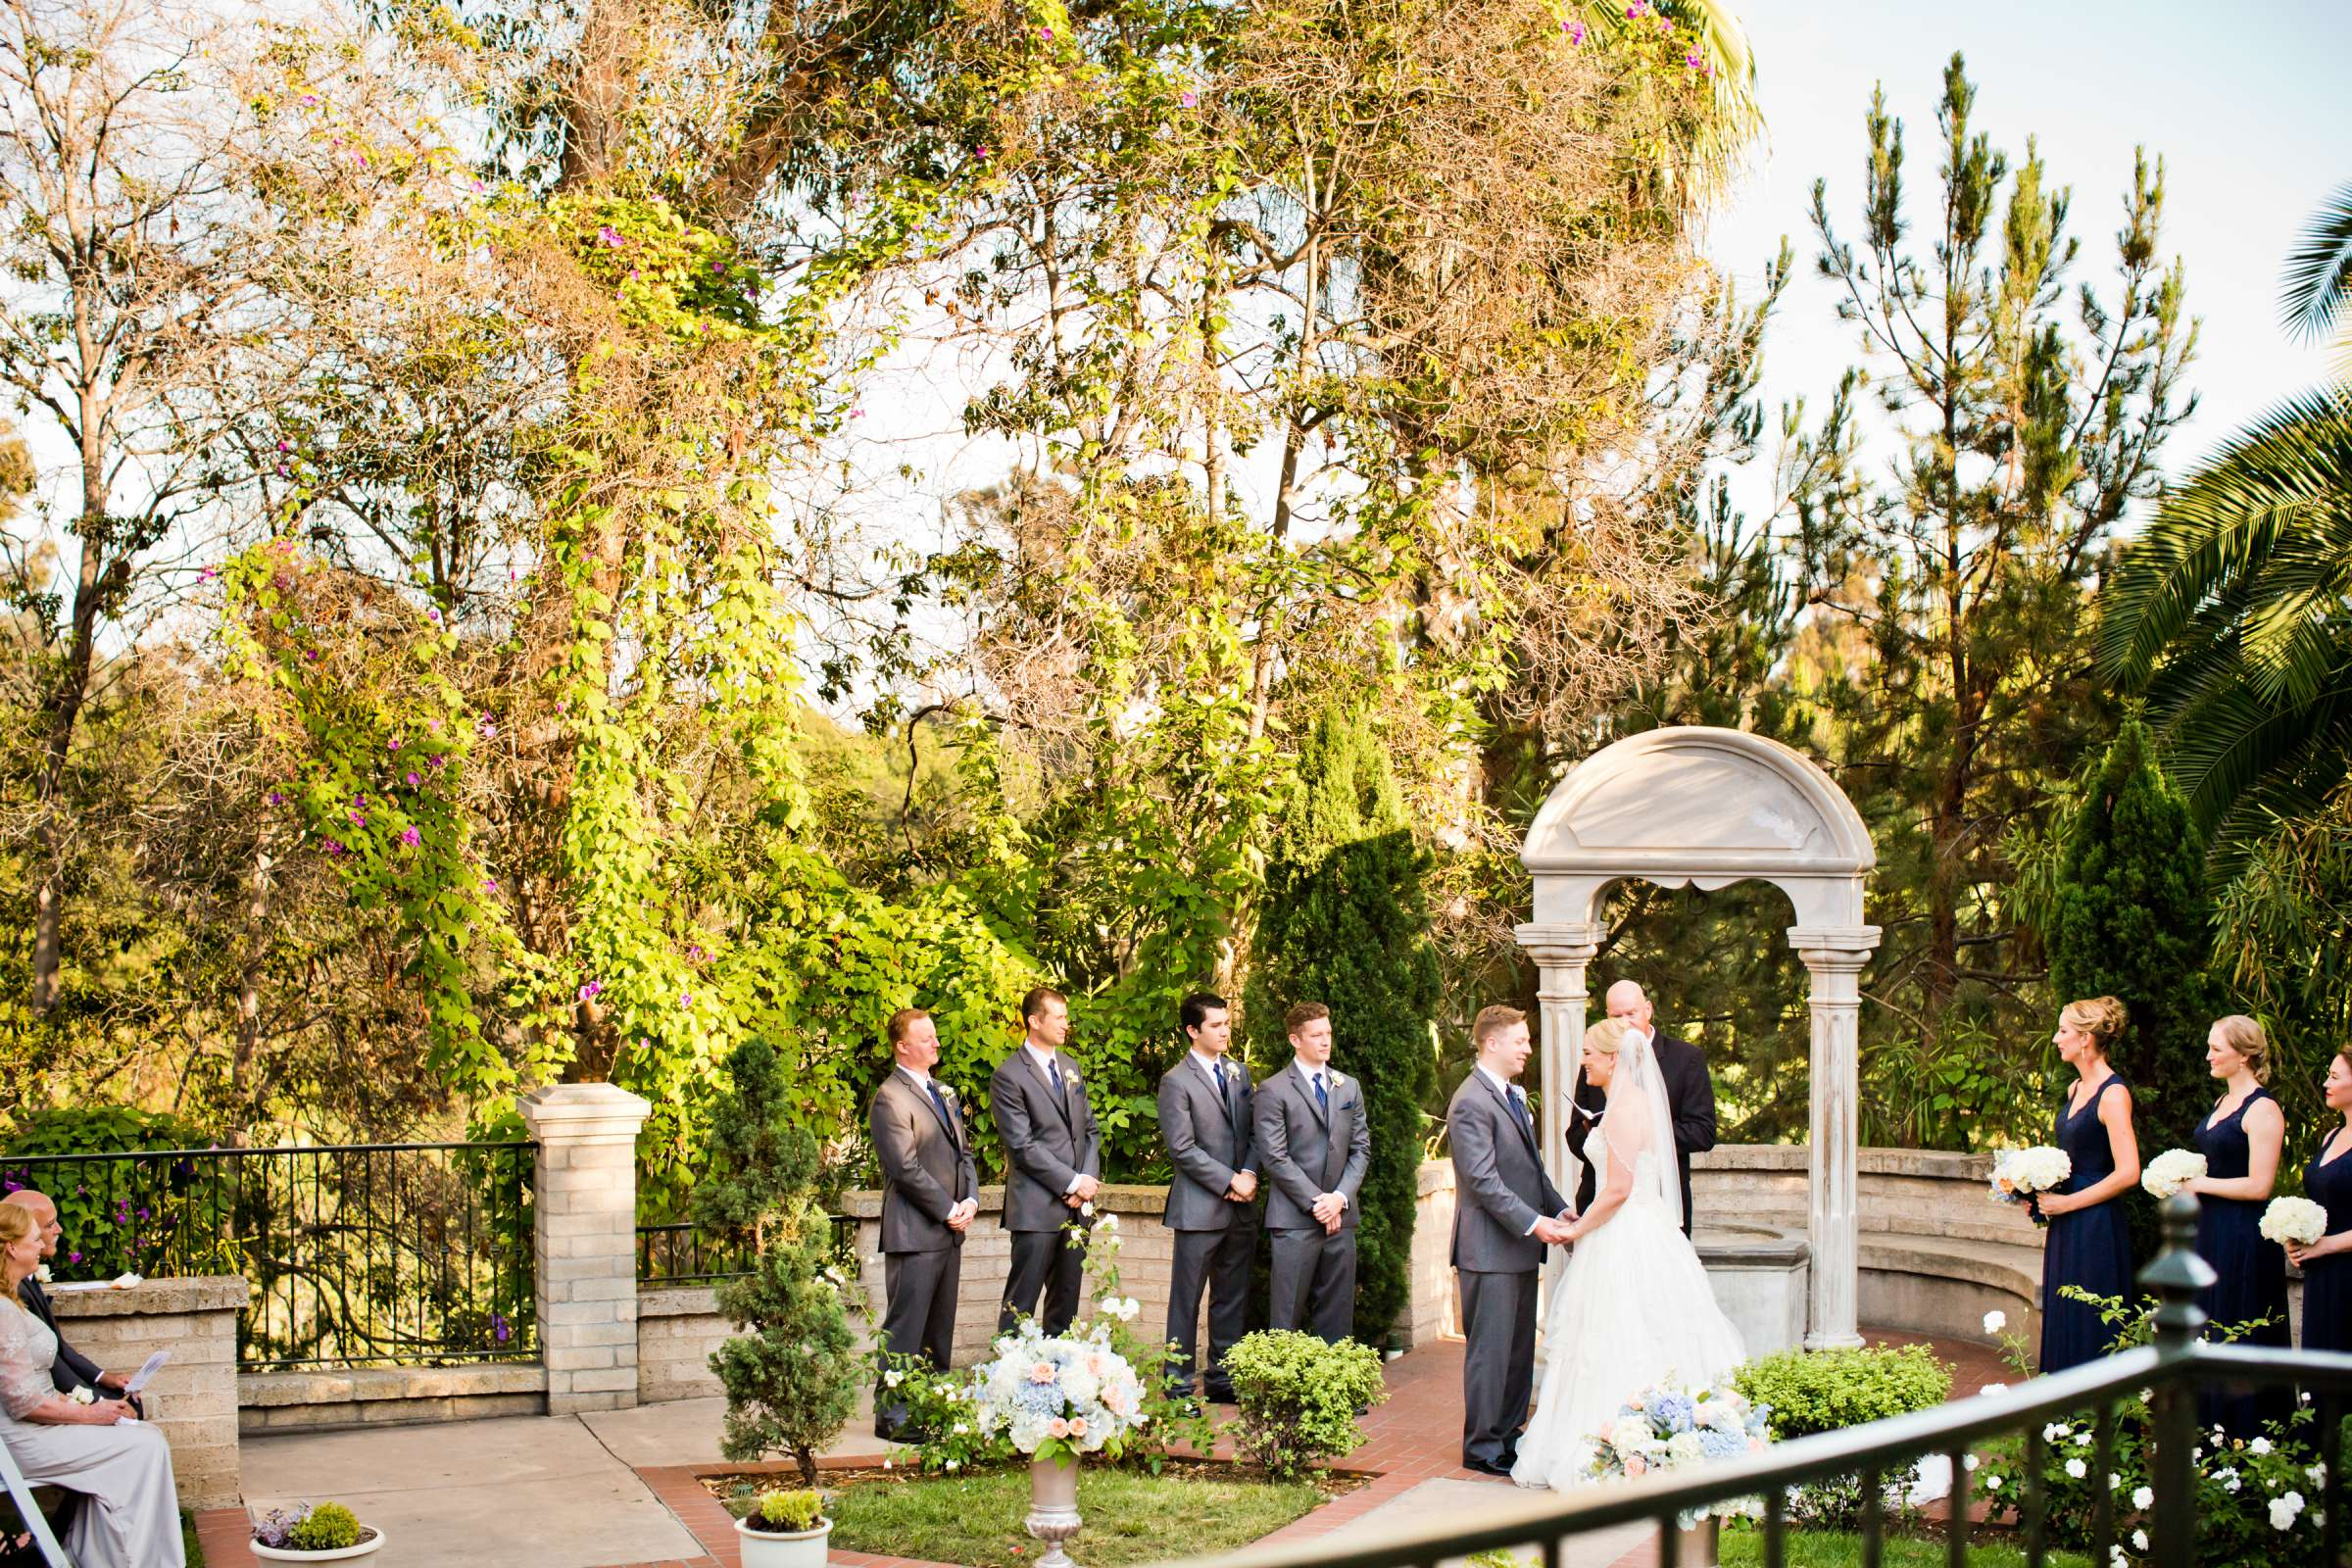 The Prado Wedding coordinated by Sublime Weddings, Ashley and Andrew Wedding Photo #31 by True Photography